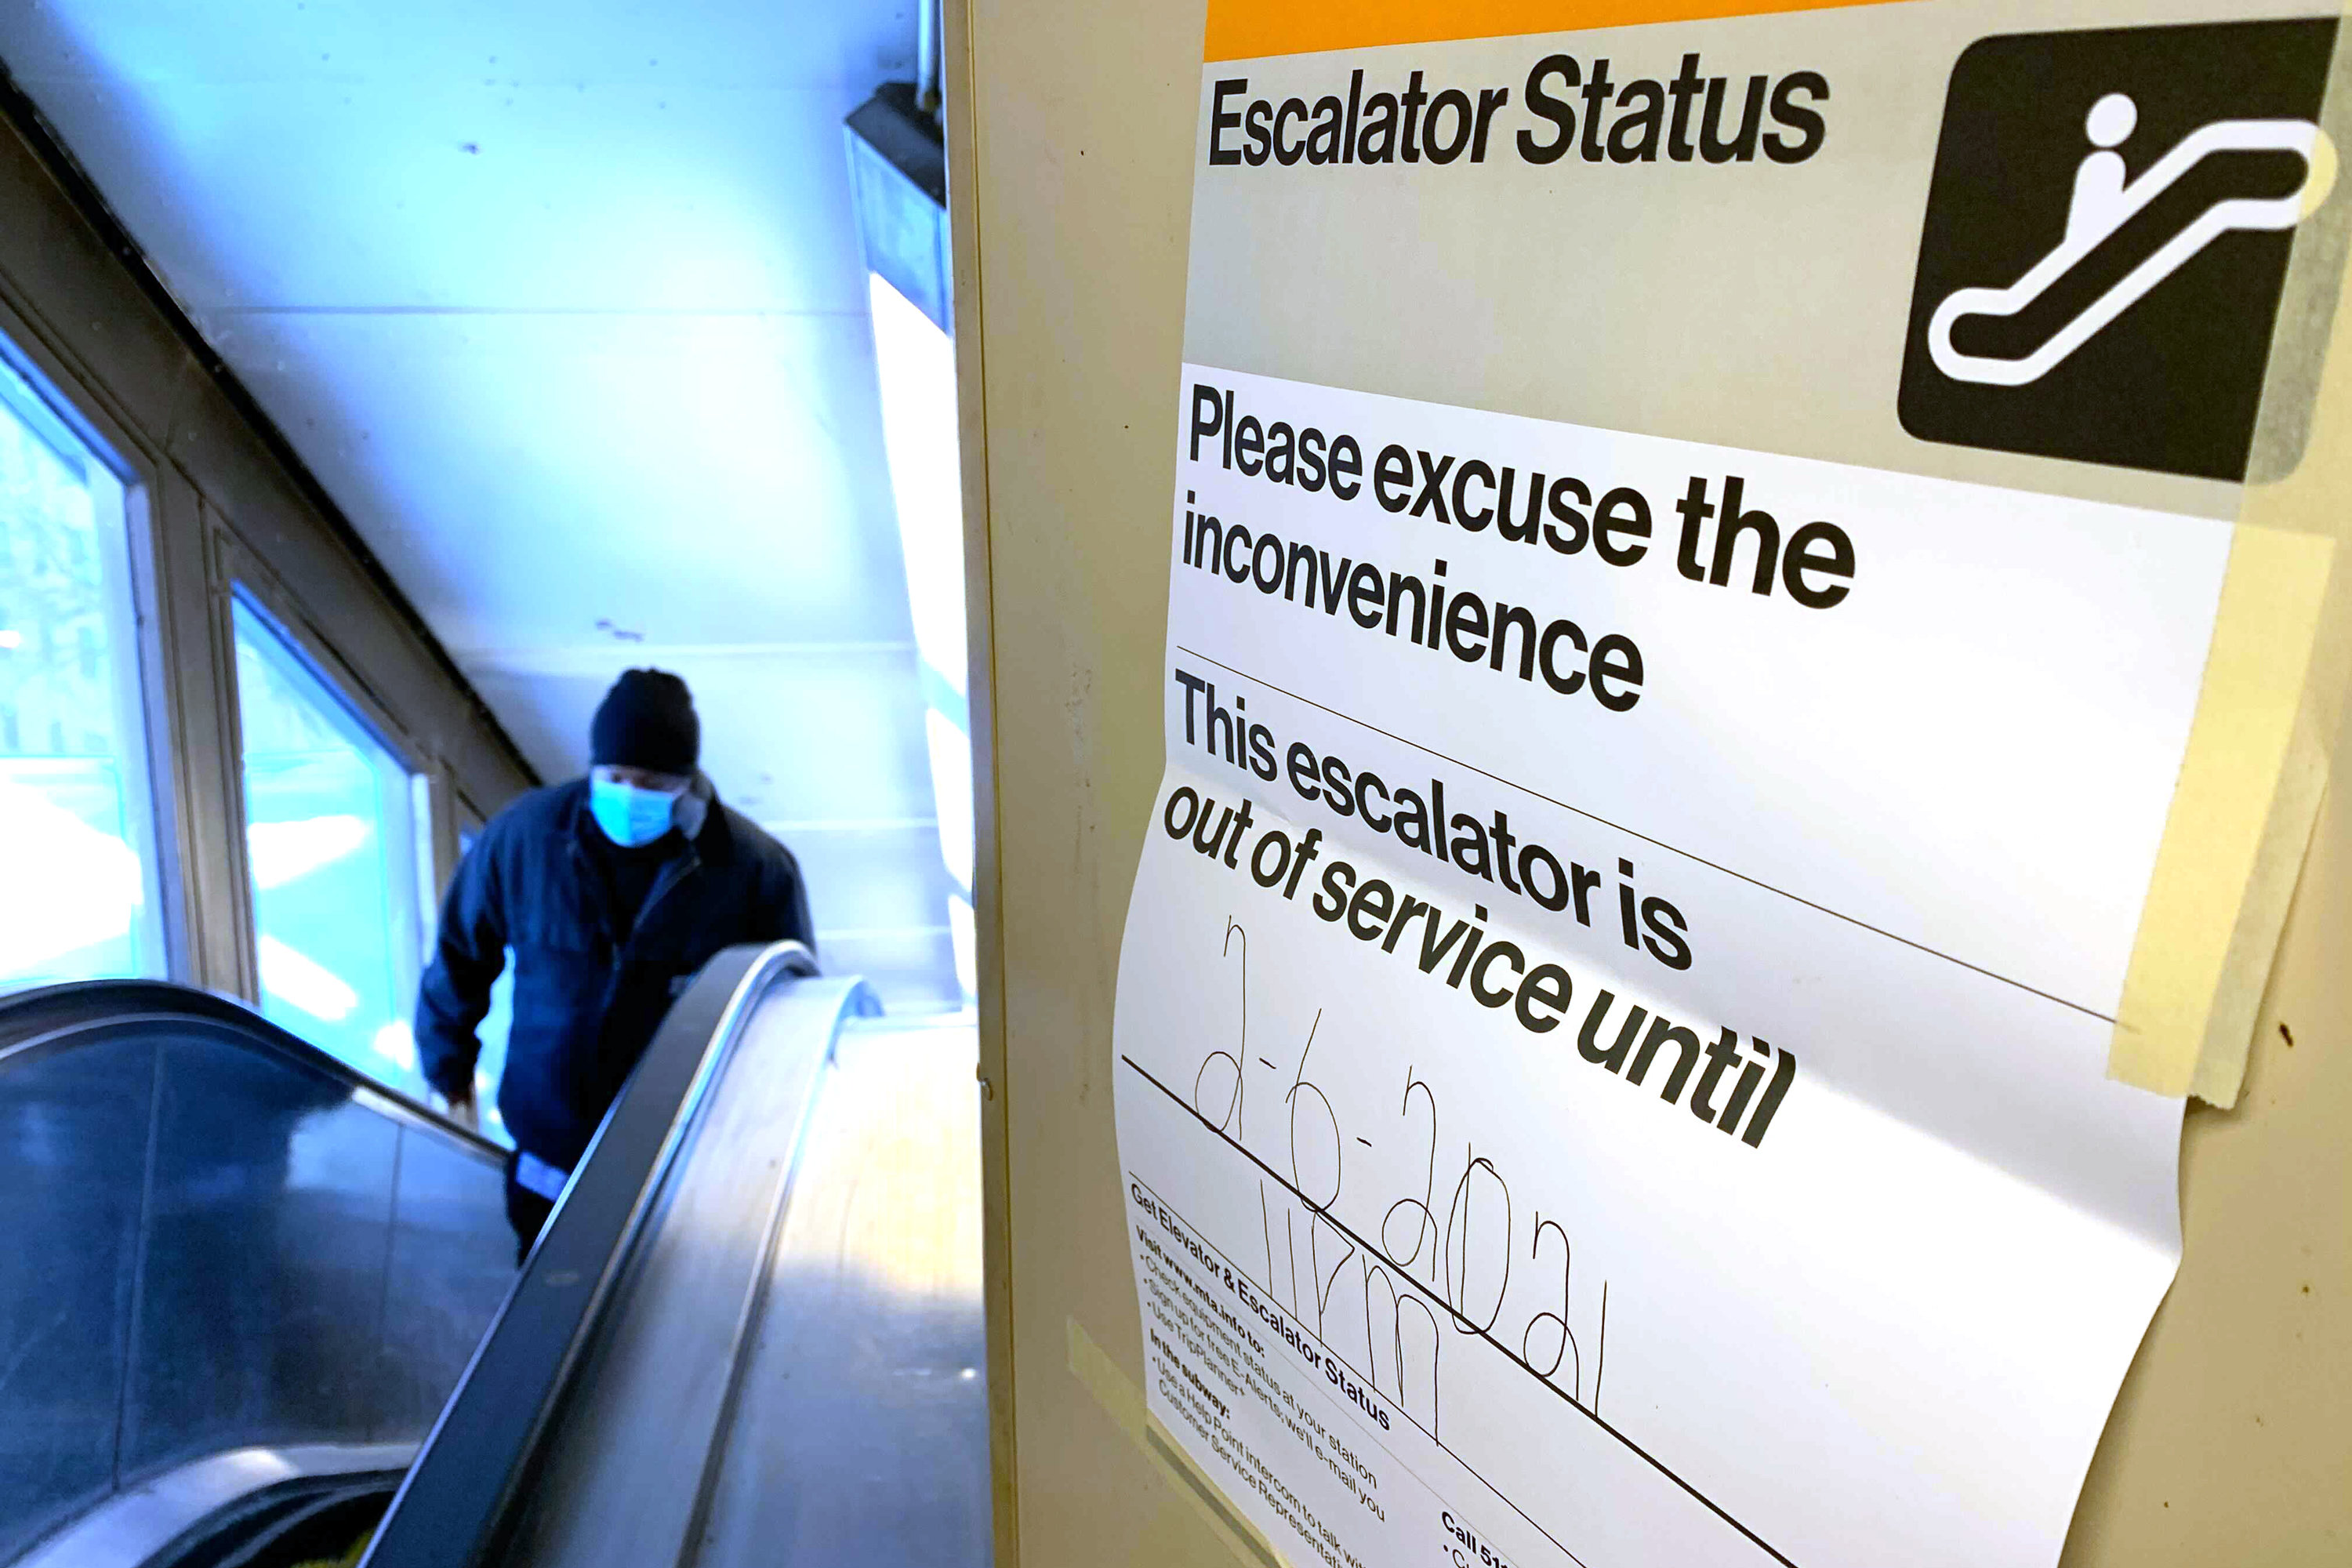 As escalator at the 1 train 125th Street stop was out of service Thursday, Feb. 4, 2021.